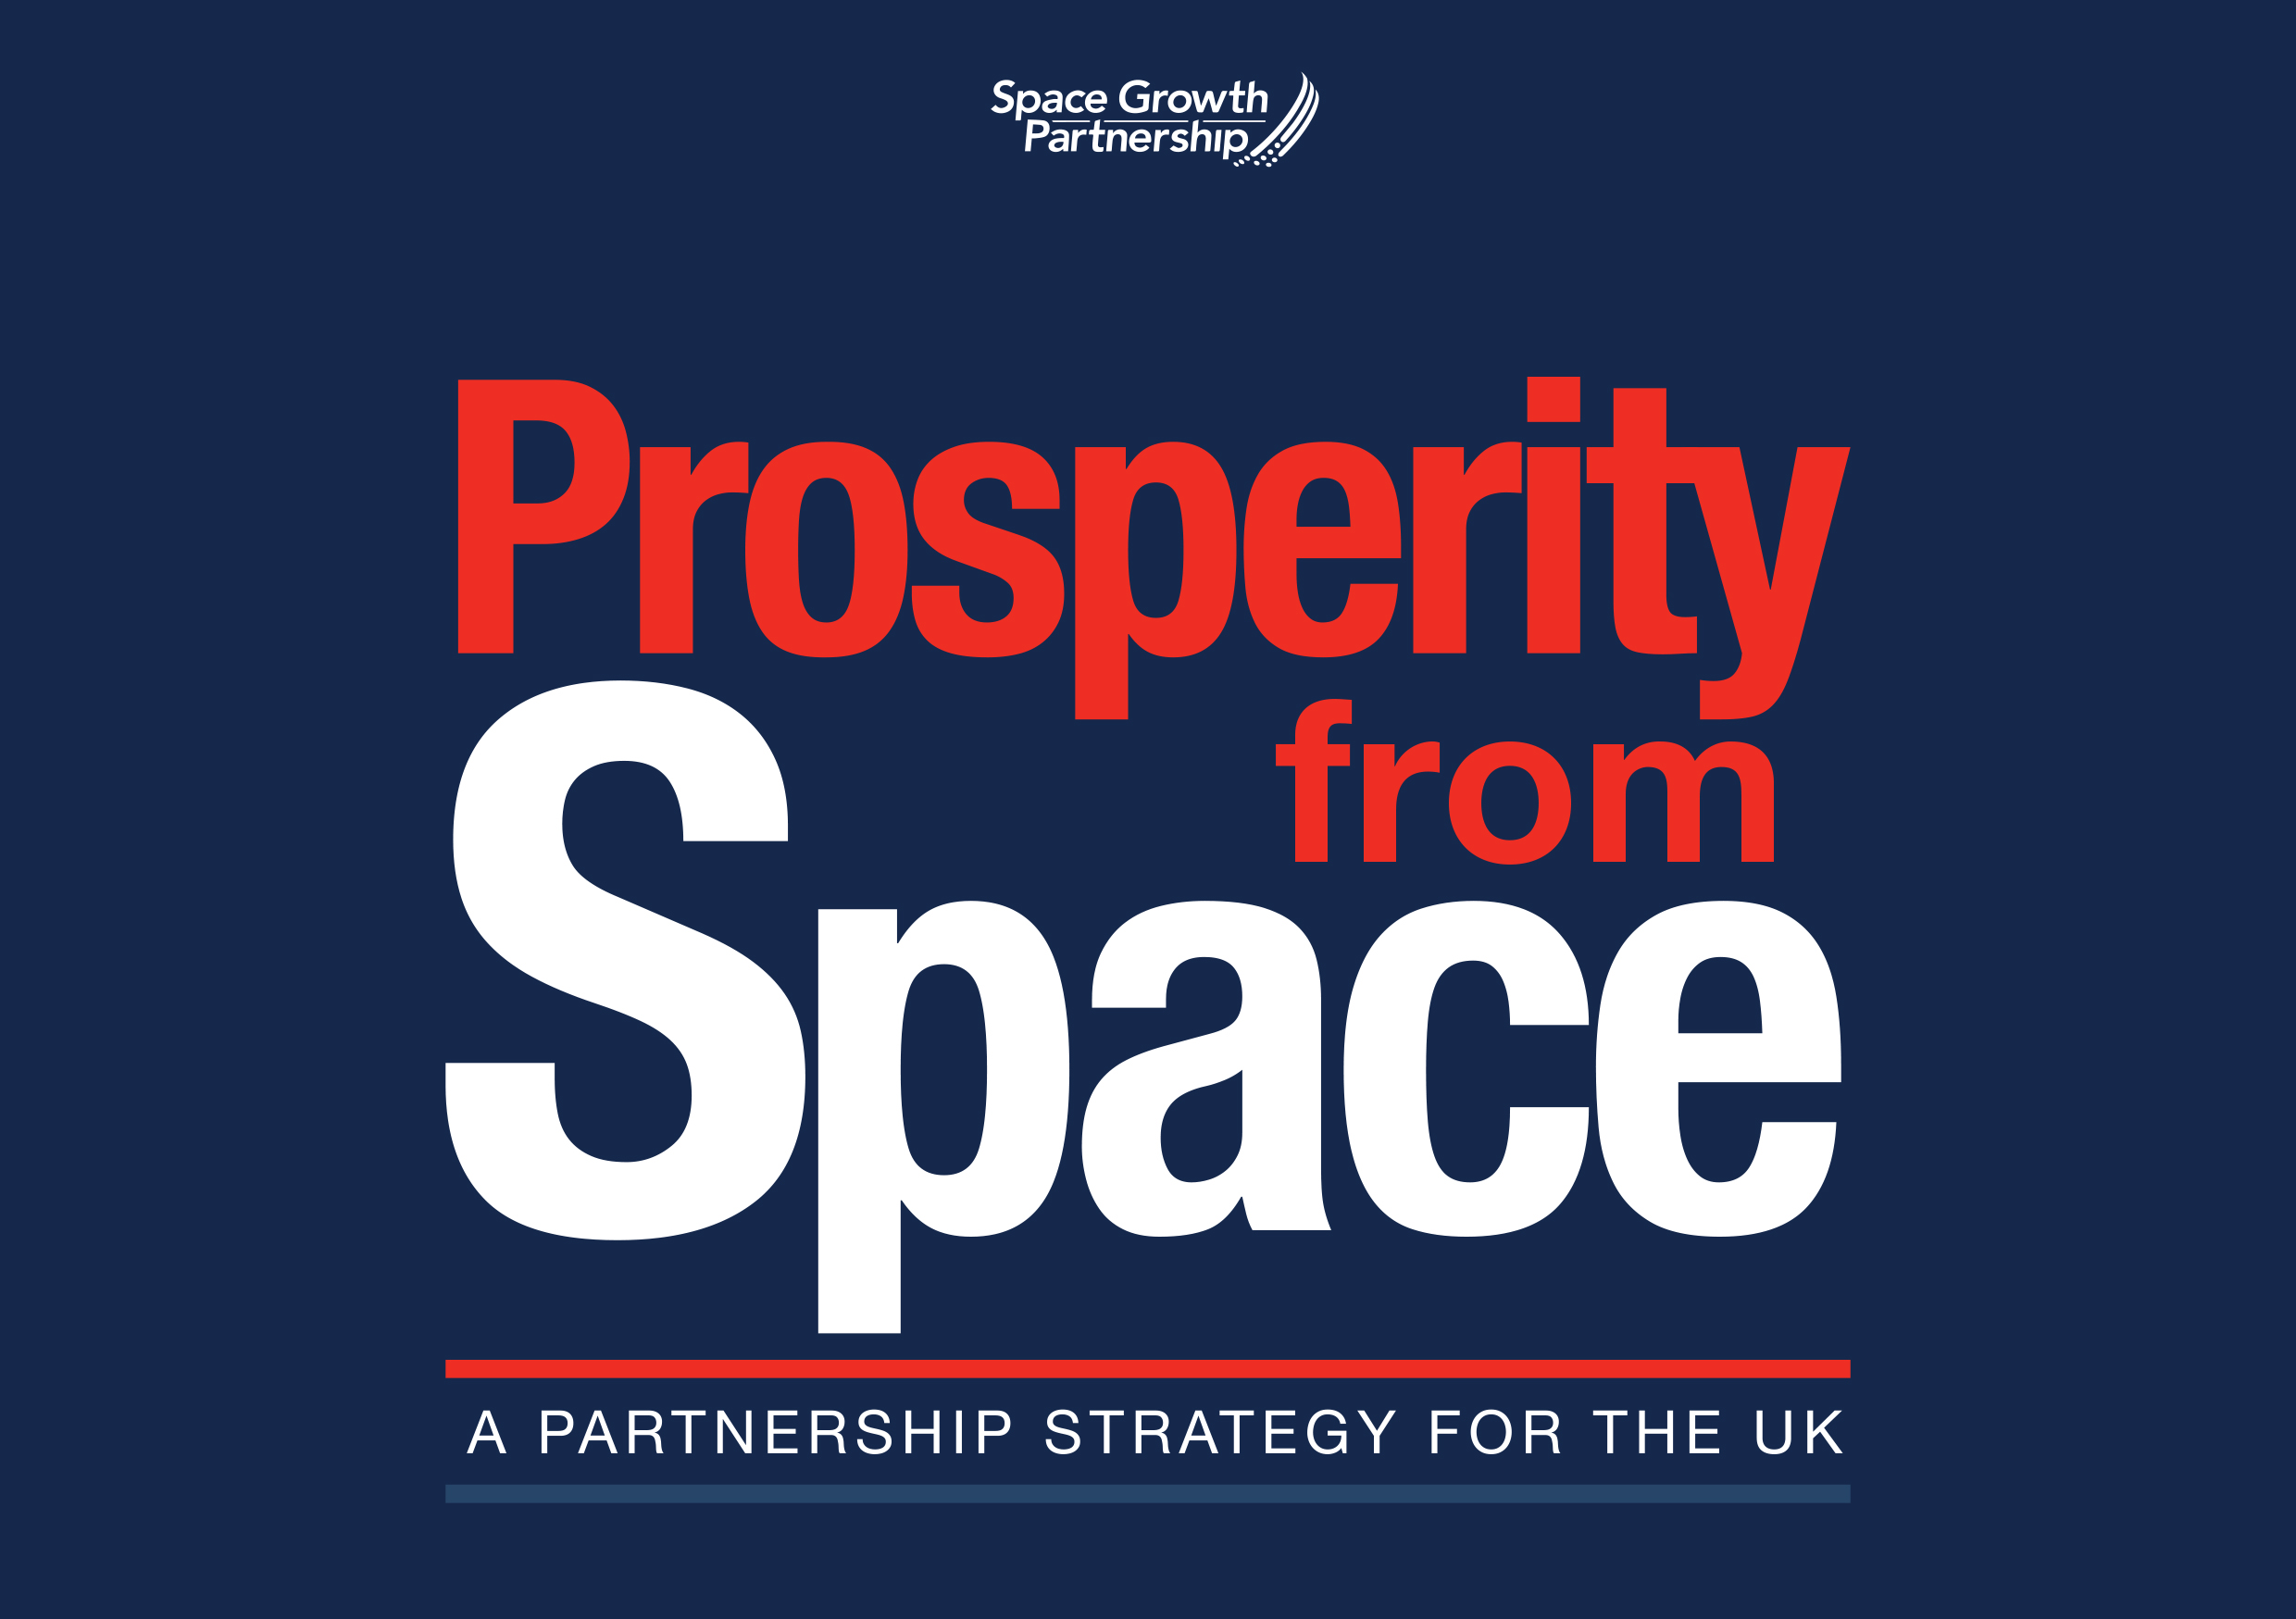 Space is a UK Success Story